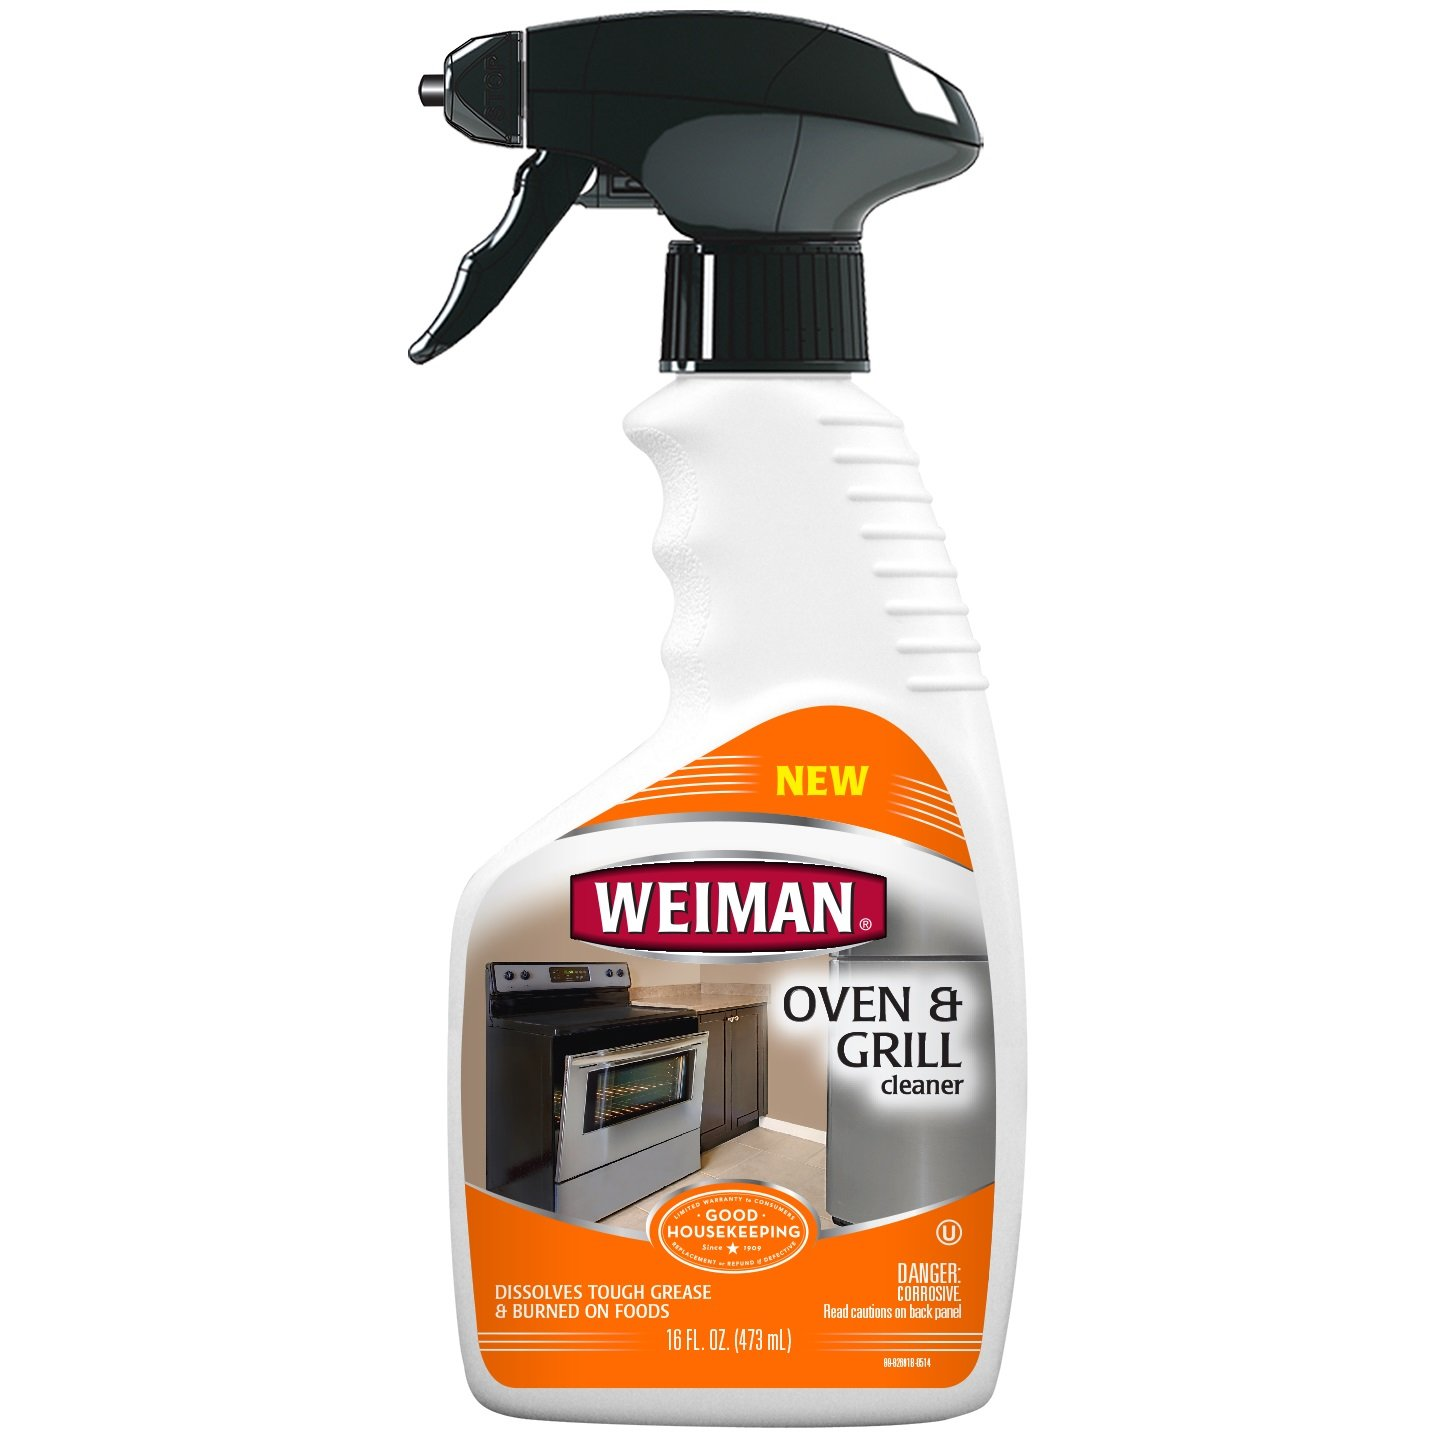 Weiman Oven & Grill Cleaner, 16 fl. oz. by Weiman